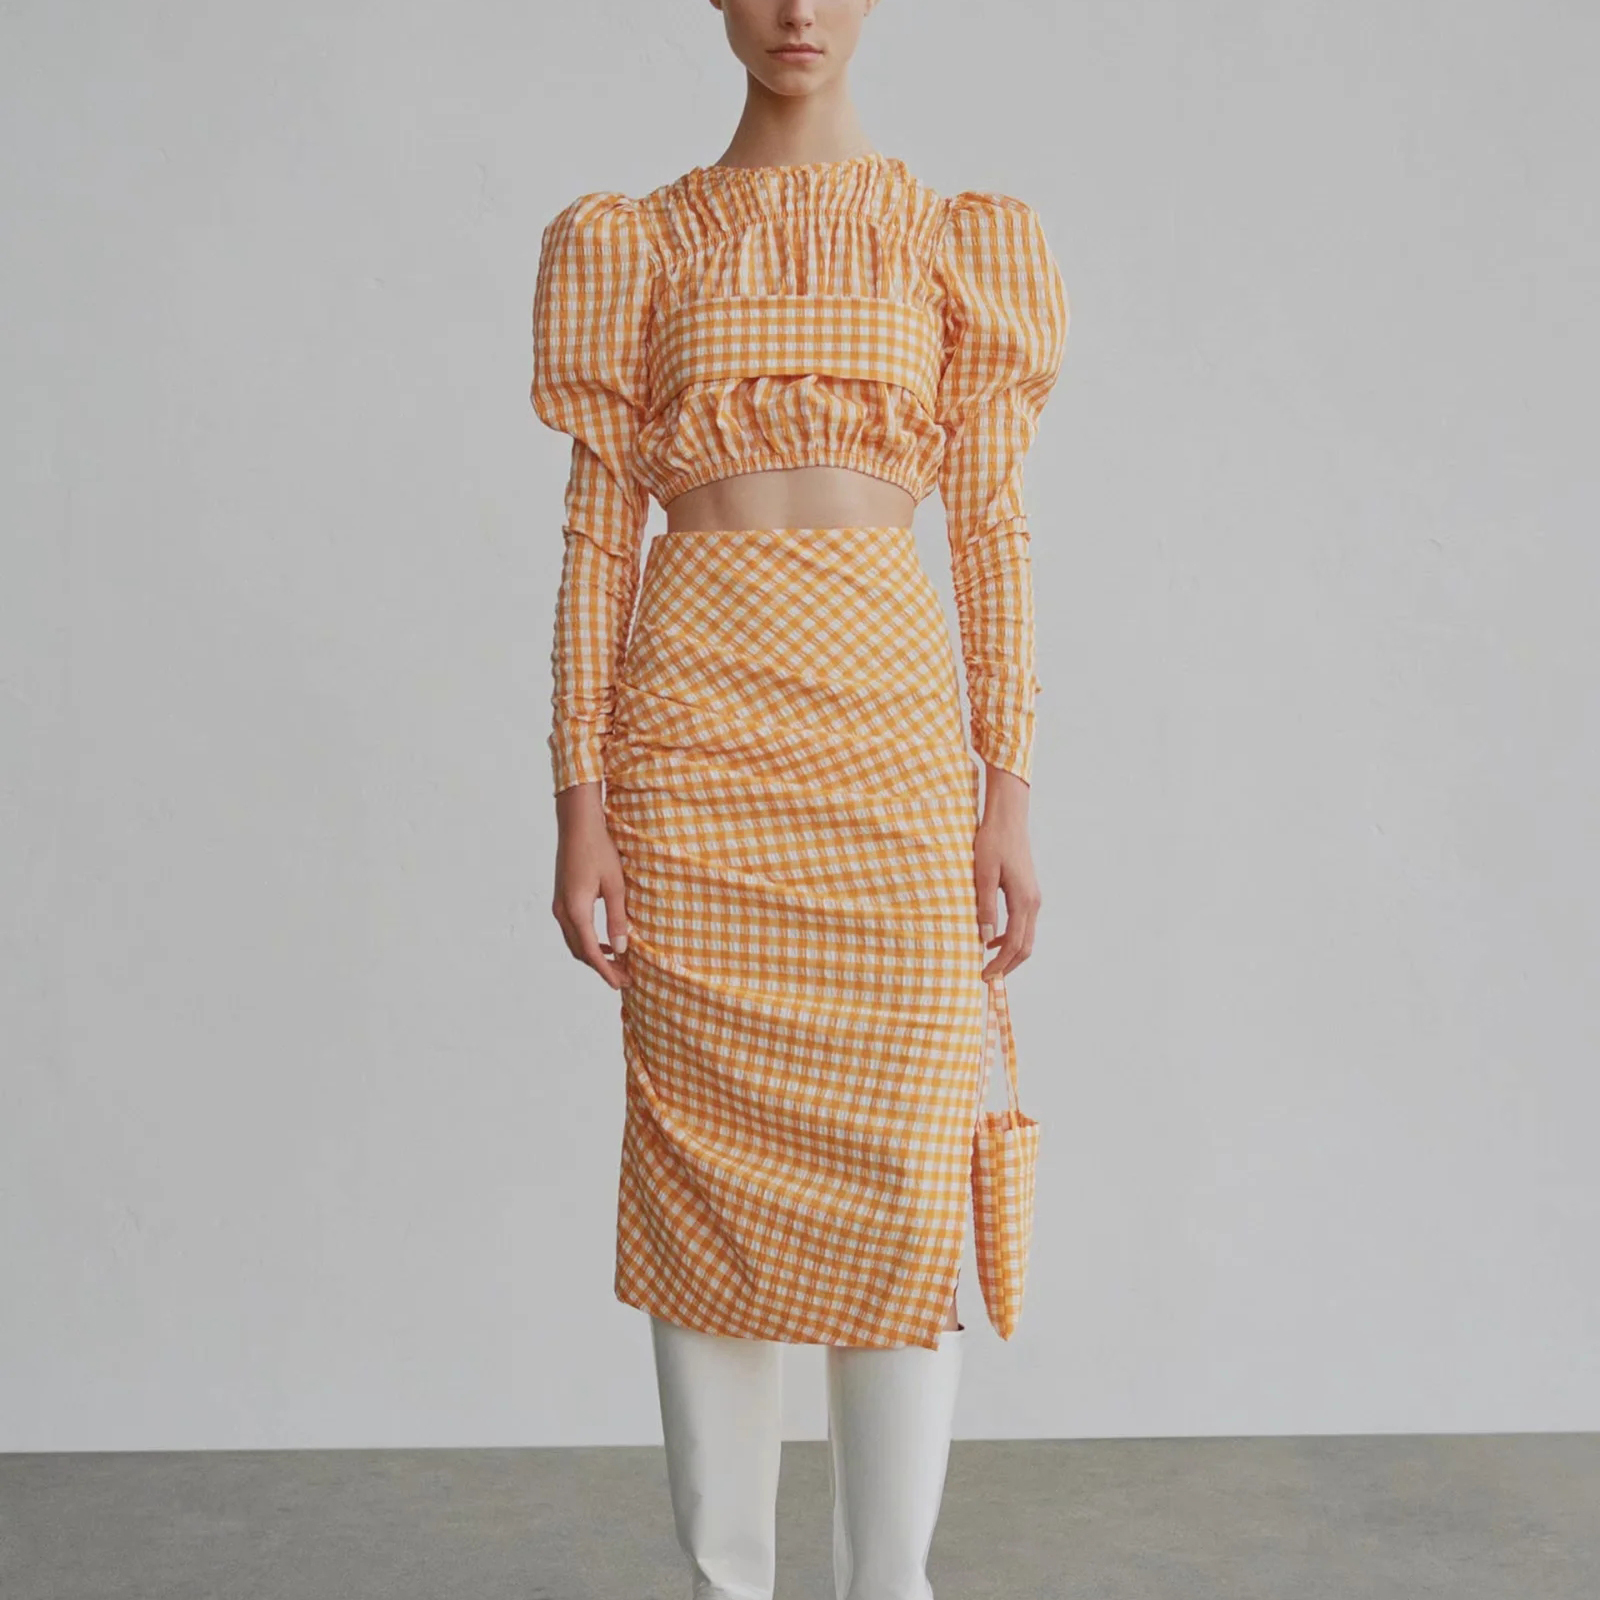 ZA New Suits Women Two Piece Set Orange Plaid Printed Shirt&pleated Skirt High Waist Female Woman Clothes